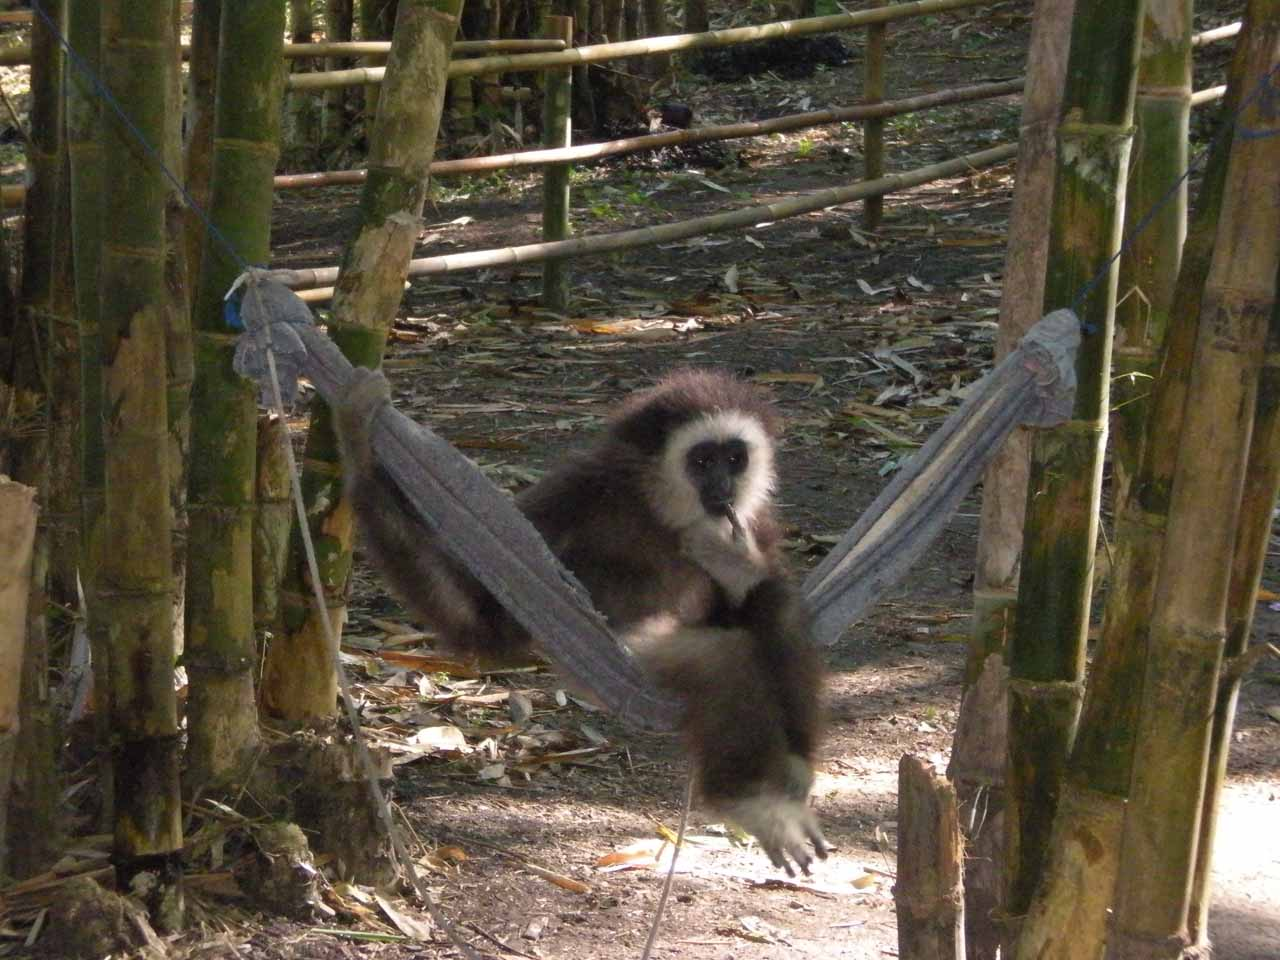 While at the geothermal springs stop, we saw this gibbon swinging by itself, but unfortunately, we sensed that it was abducted by a local who then trained it to perform for tips